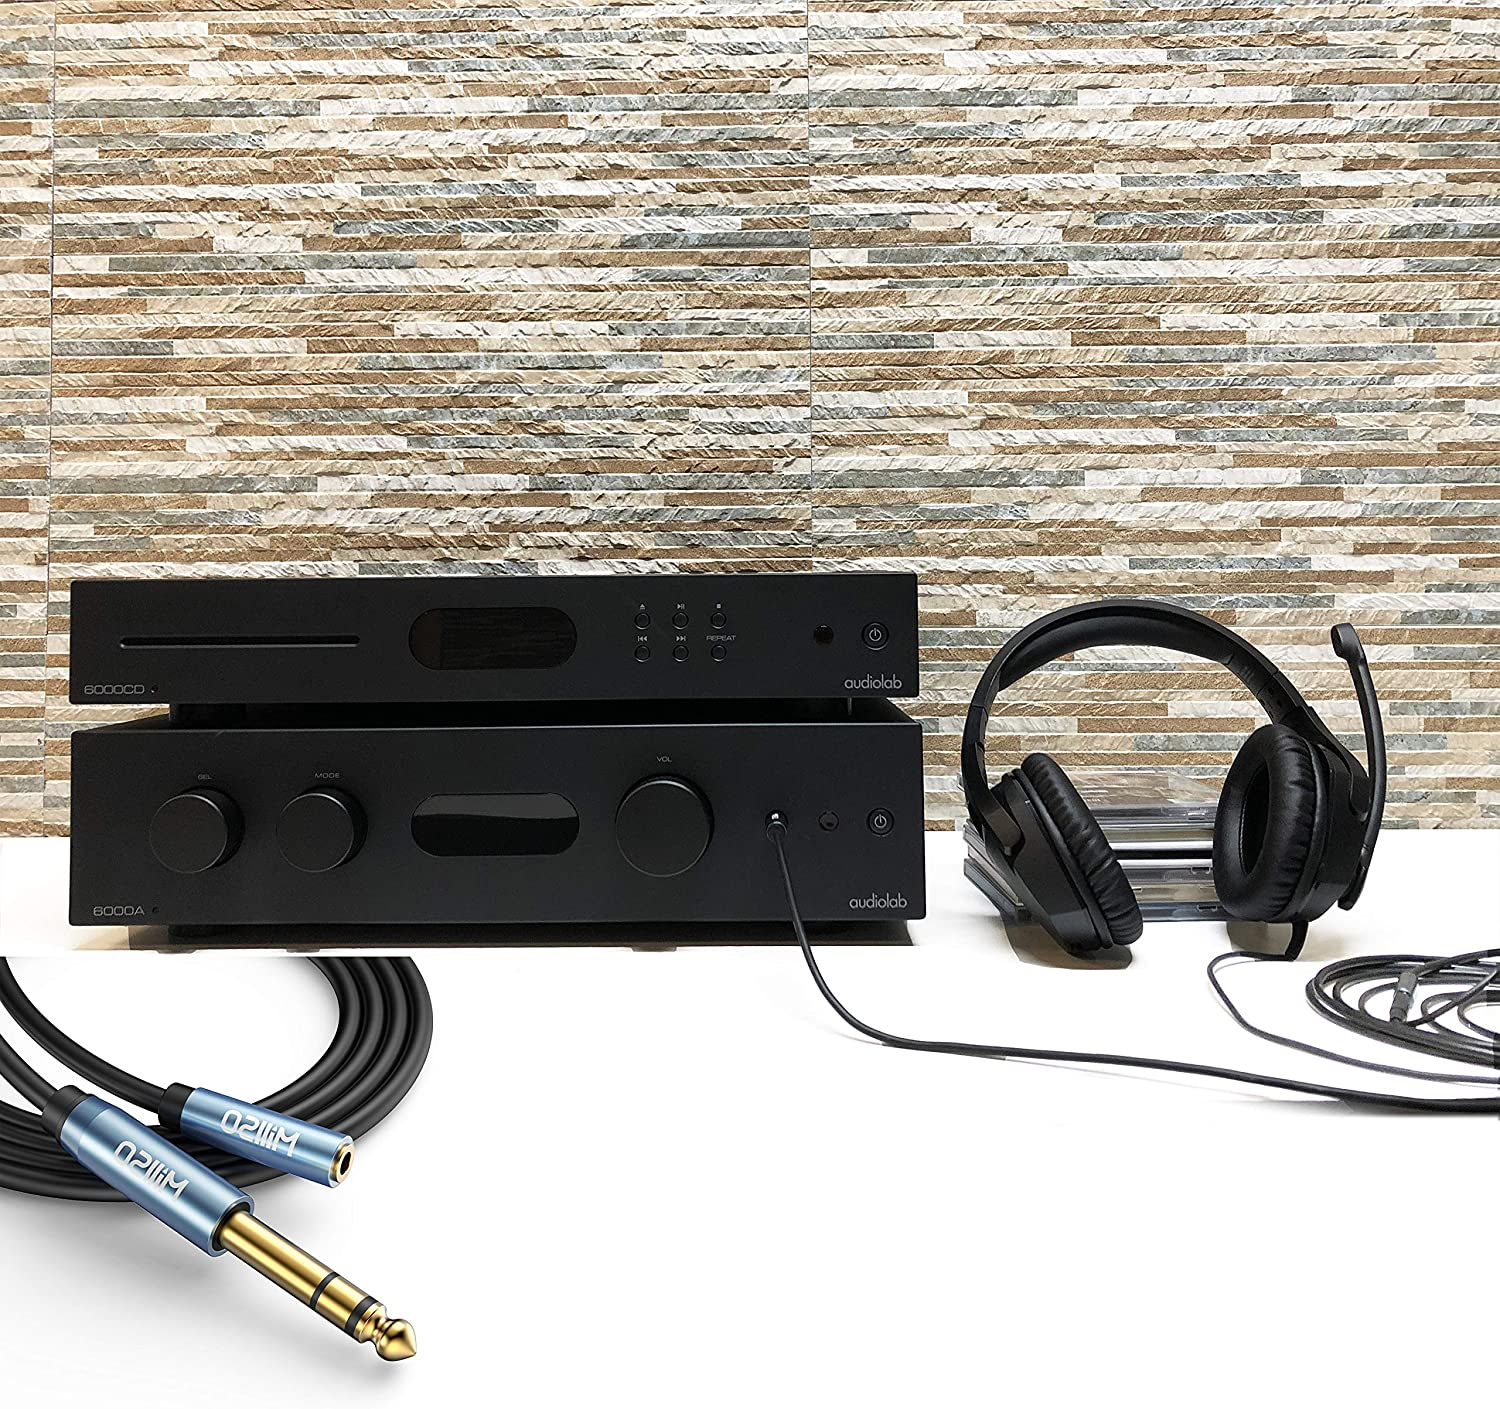 Keyboard Piano Headphones 6.6 Feet//2M Guitar Amp Home Theater MillSO 1//4 to 3.5mm Headphone Adapter 6.6ft TRS 6.35mm 1//4 Male to 3.5mm 1//8 Female Stereo Jack Audio Adapter for Amplifiers